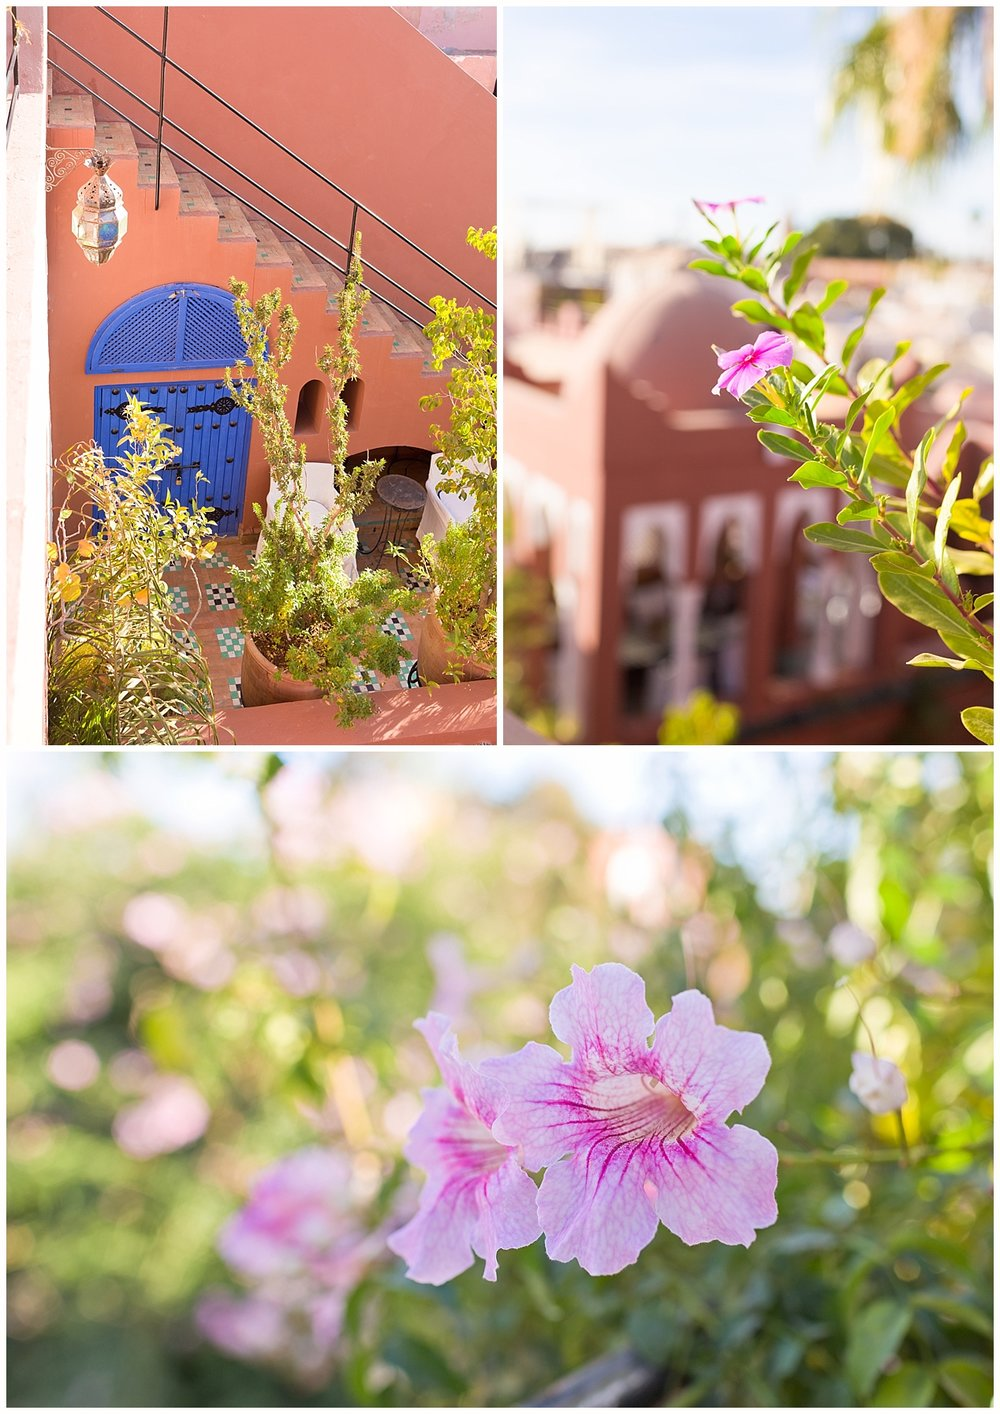 flowers and plants on rooftop at Riad Kaiss, Marrakech, Morocco